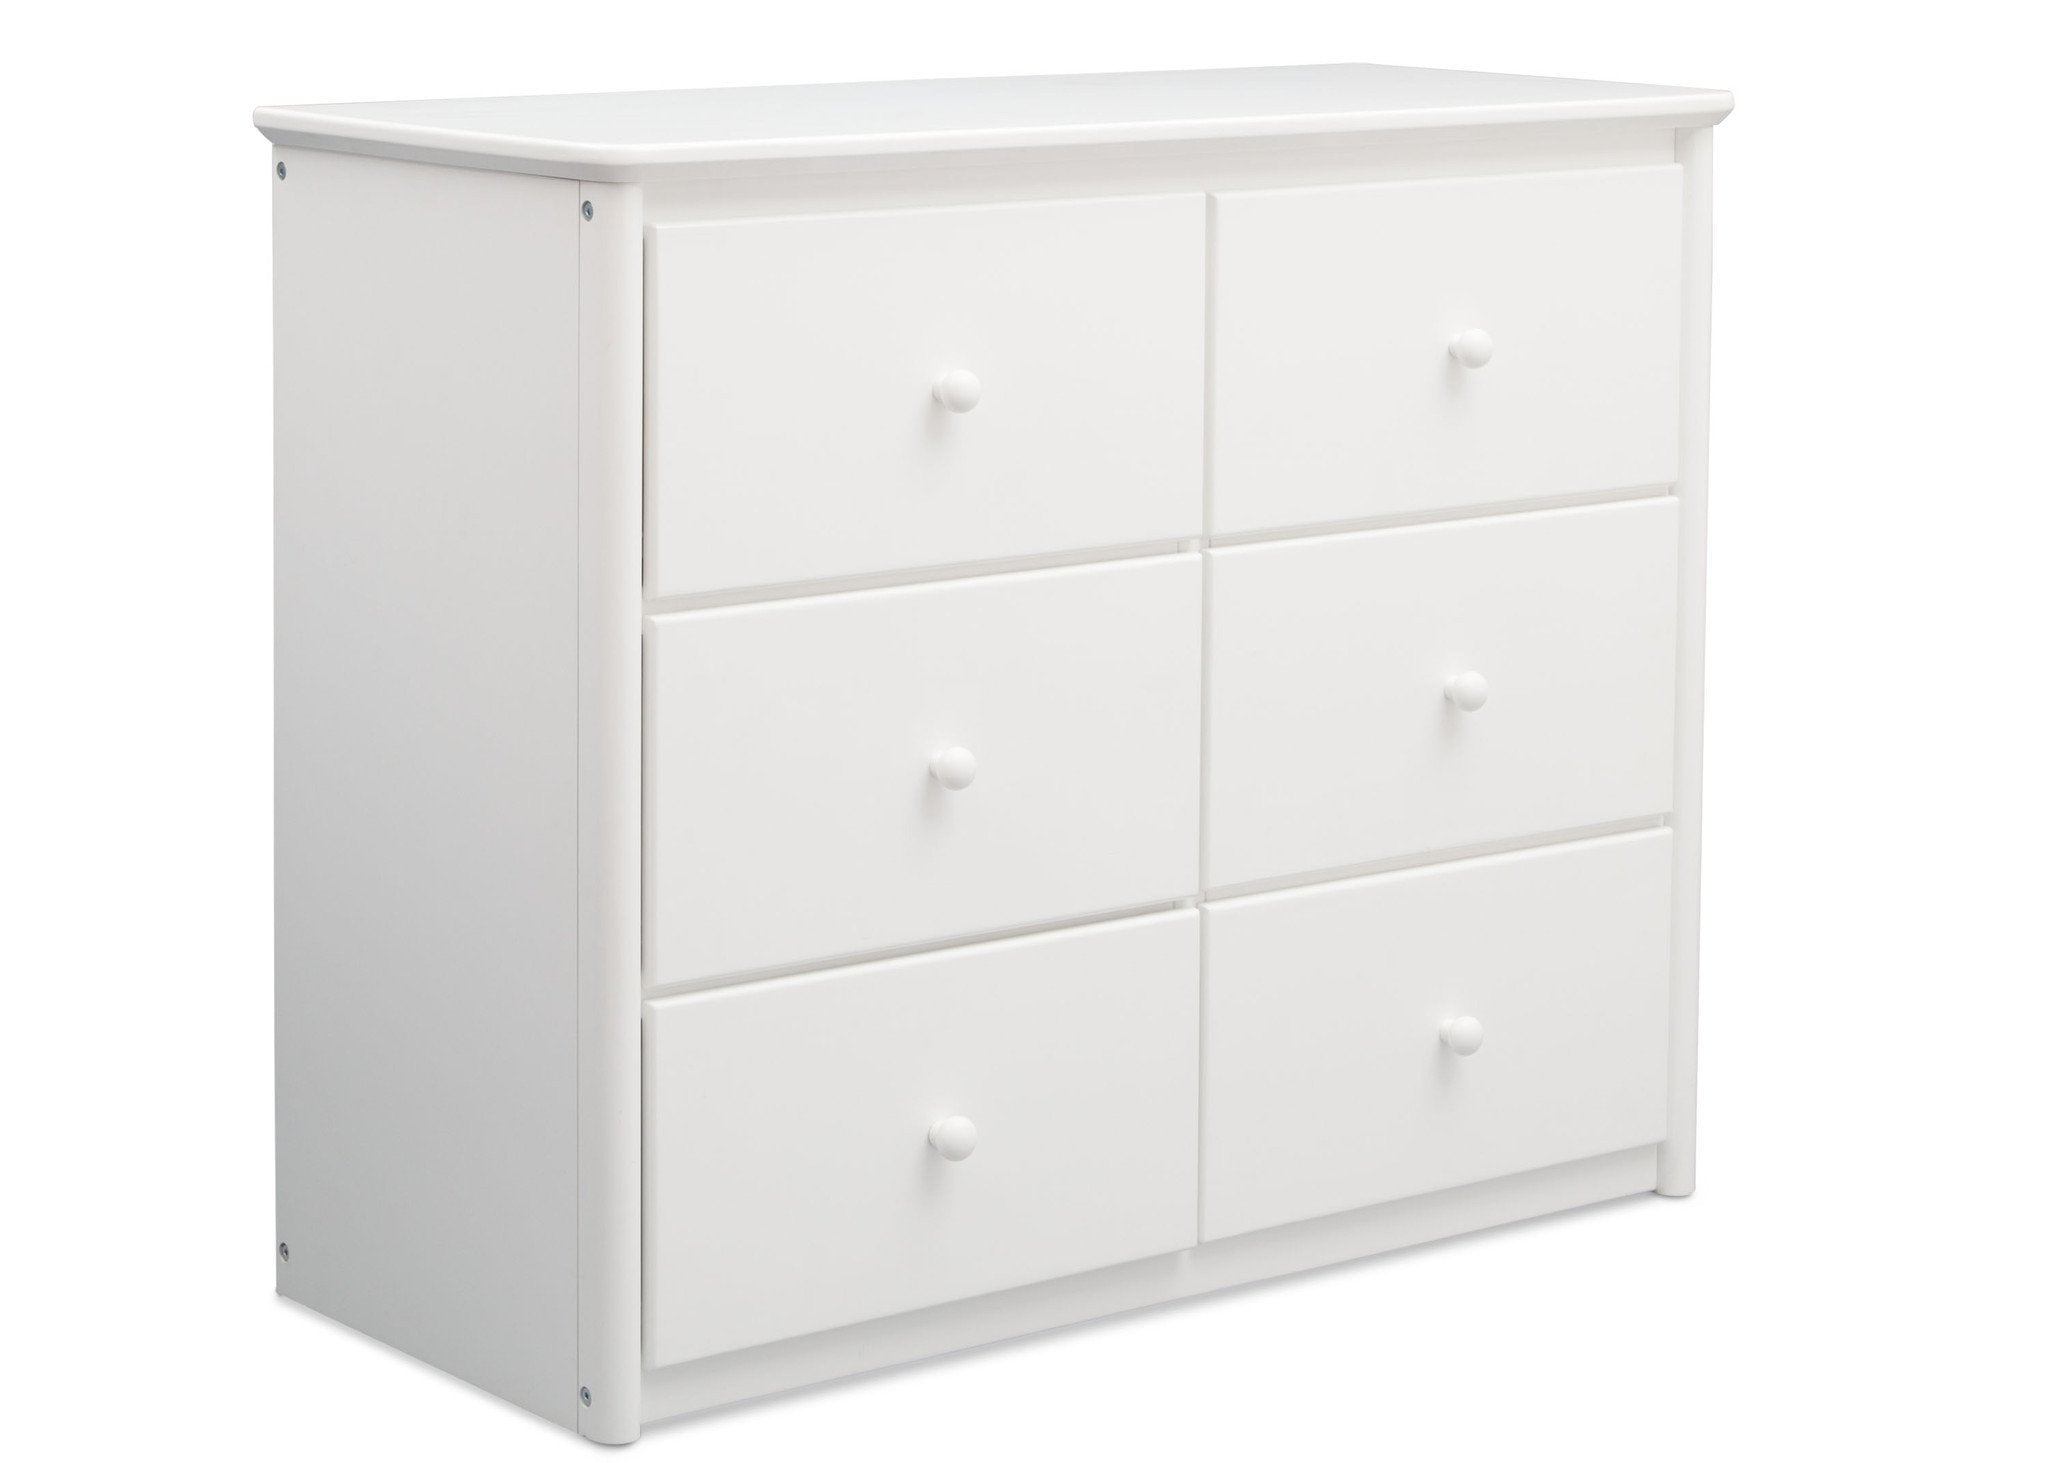 Delta Children White (100) Somerset 6 Drawer Dresser Side View a2a